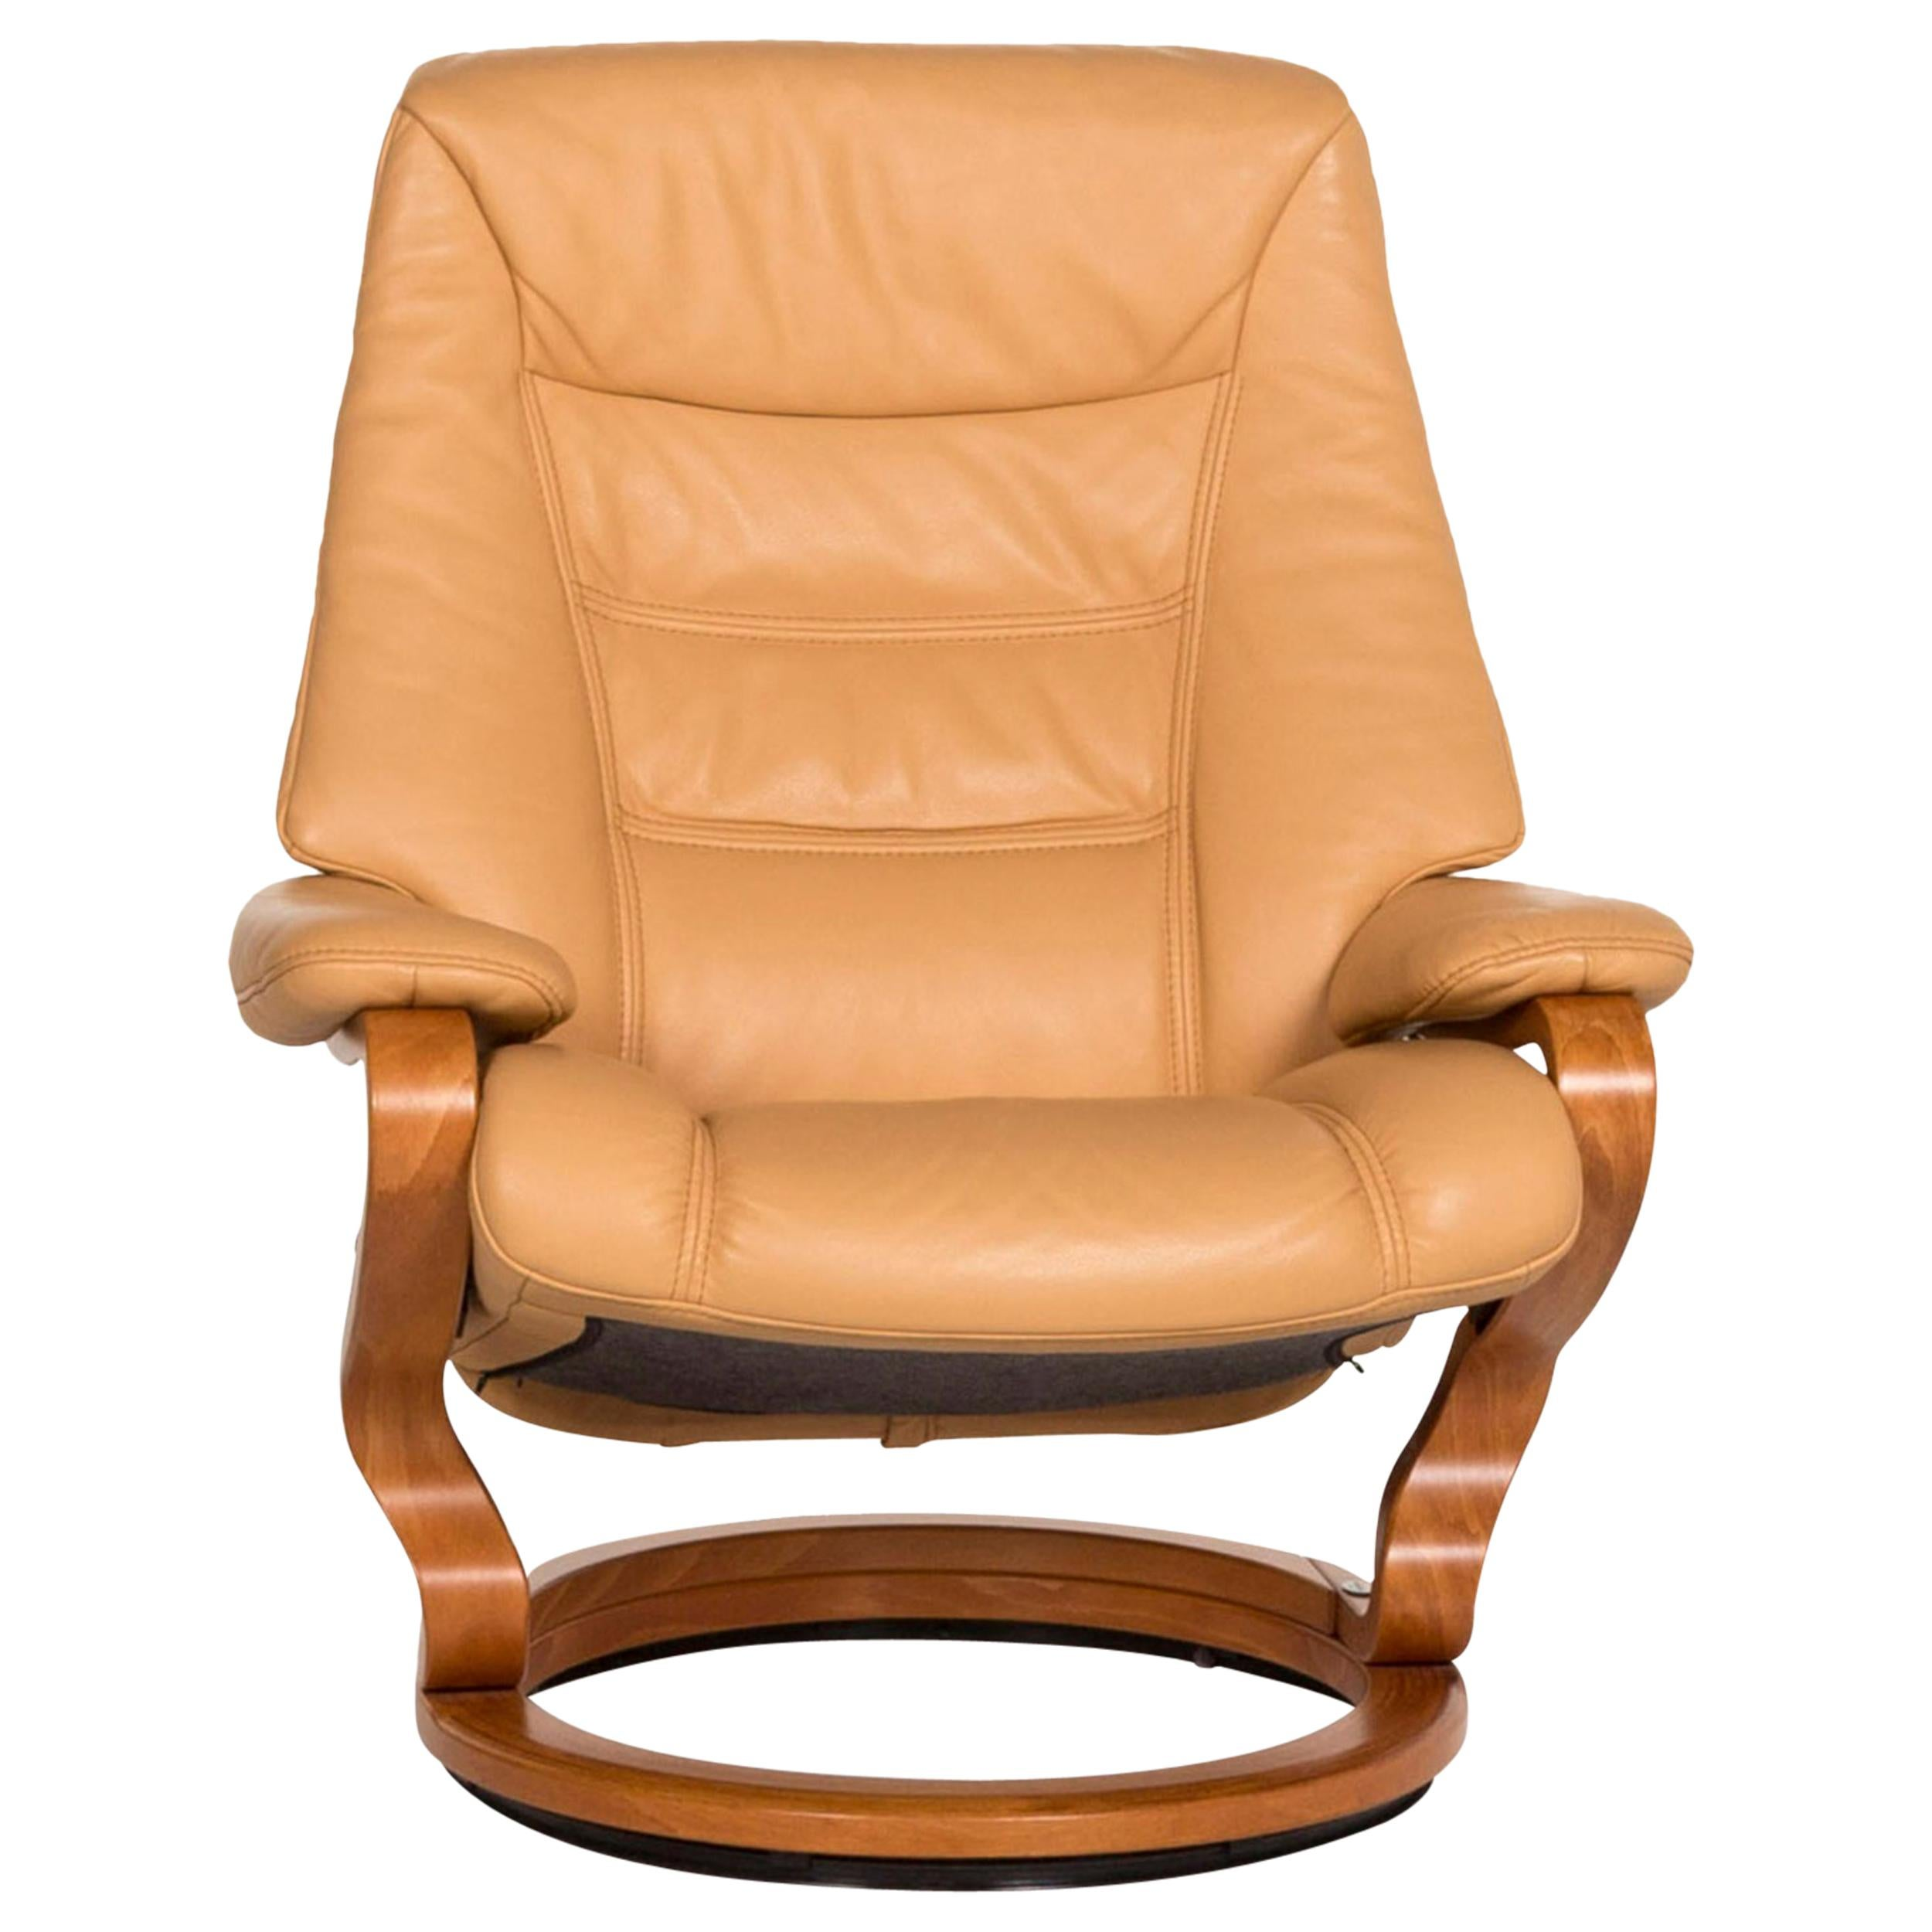 Himolla Leather Armchair Beige Relax Function Relax Armchair